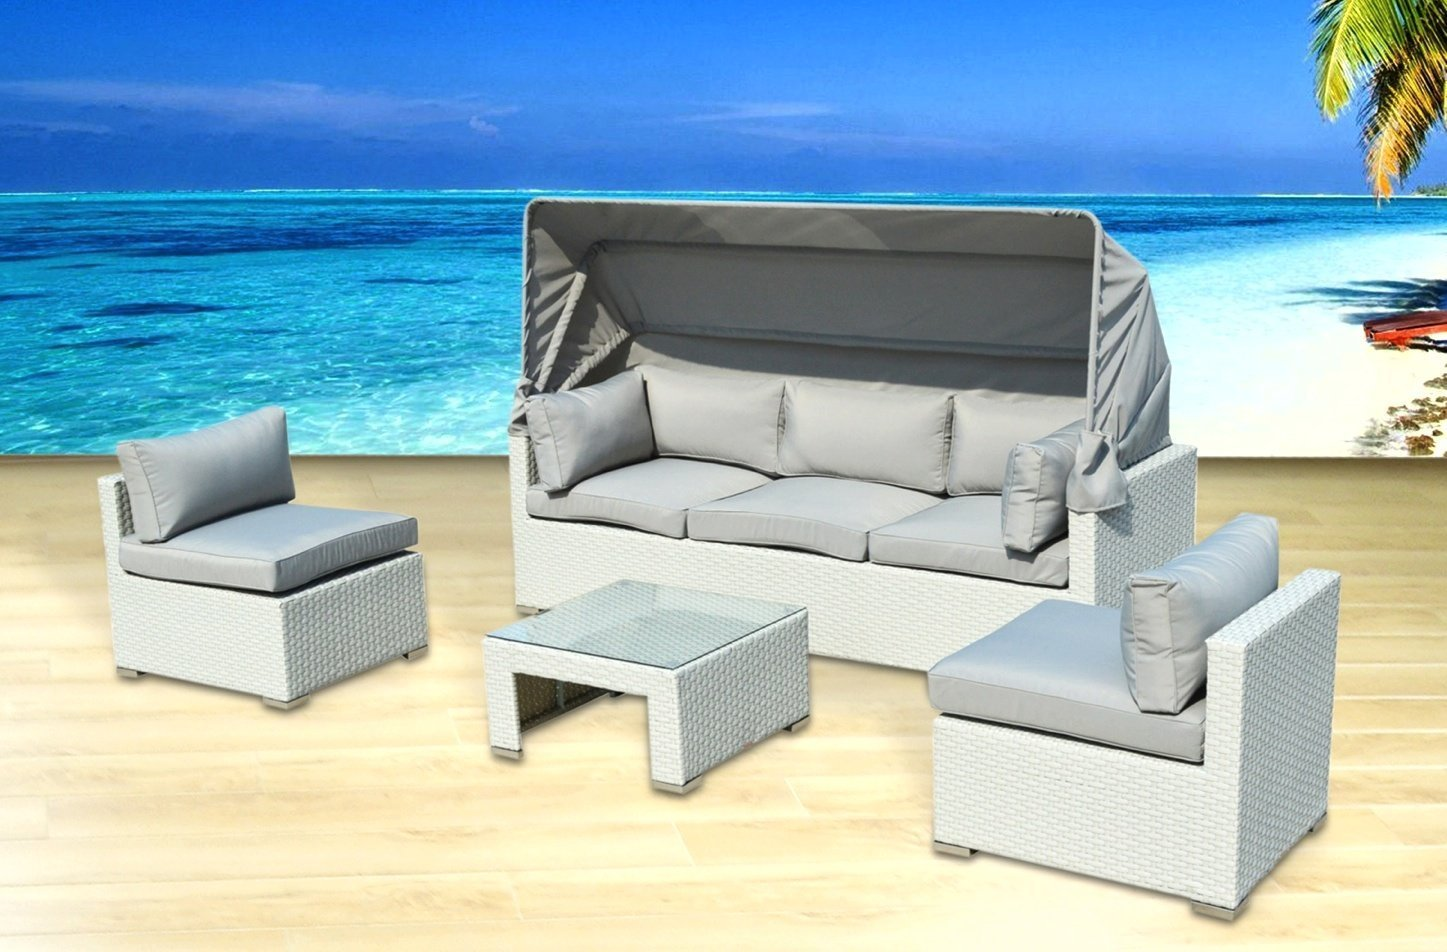 patio couch set outdoor patio furniture backyard sofa modern all weather wicker sectional pc rattan resin couch set